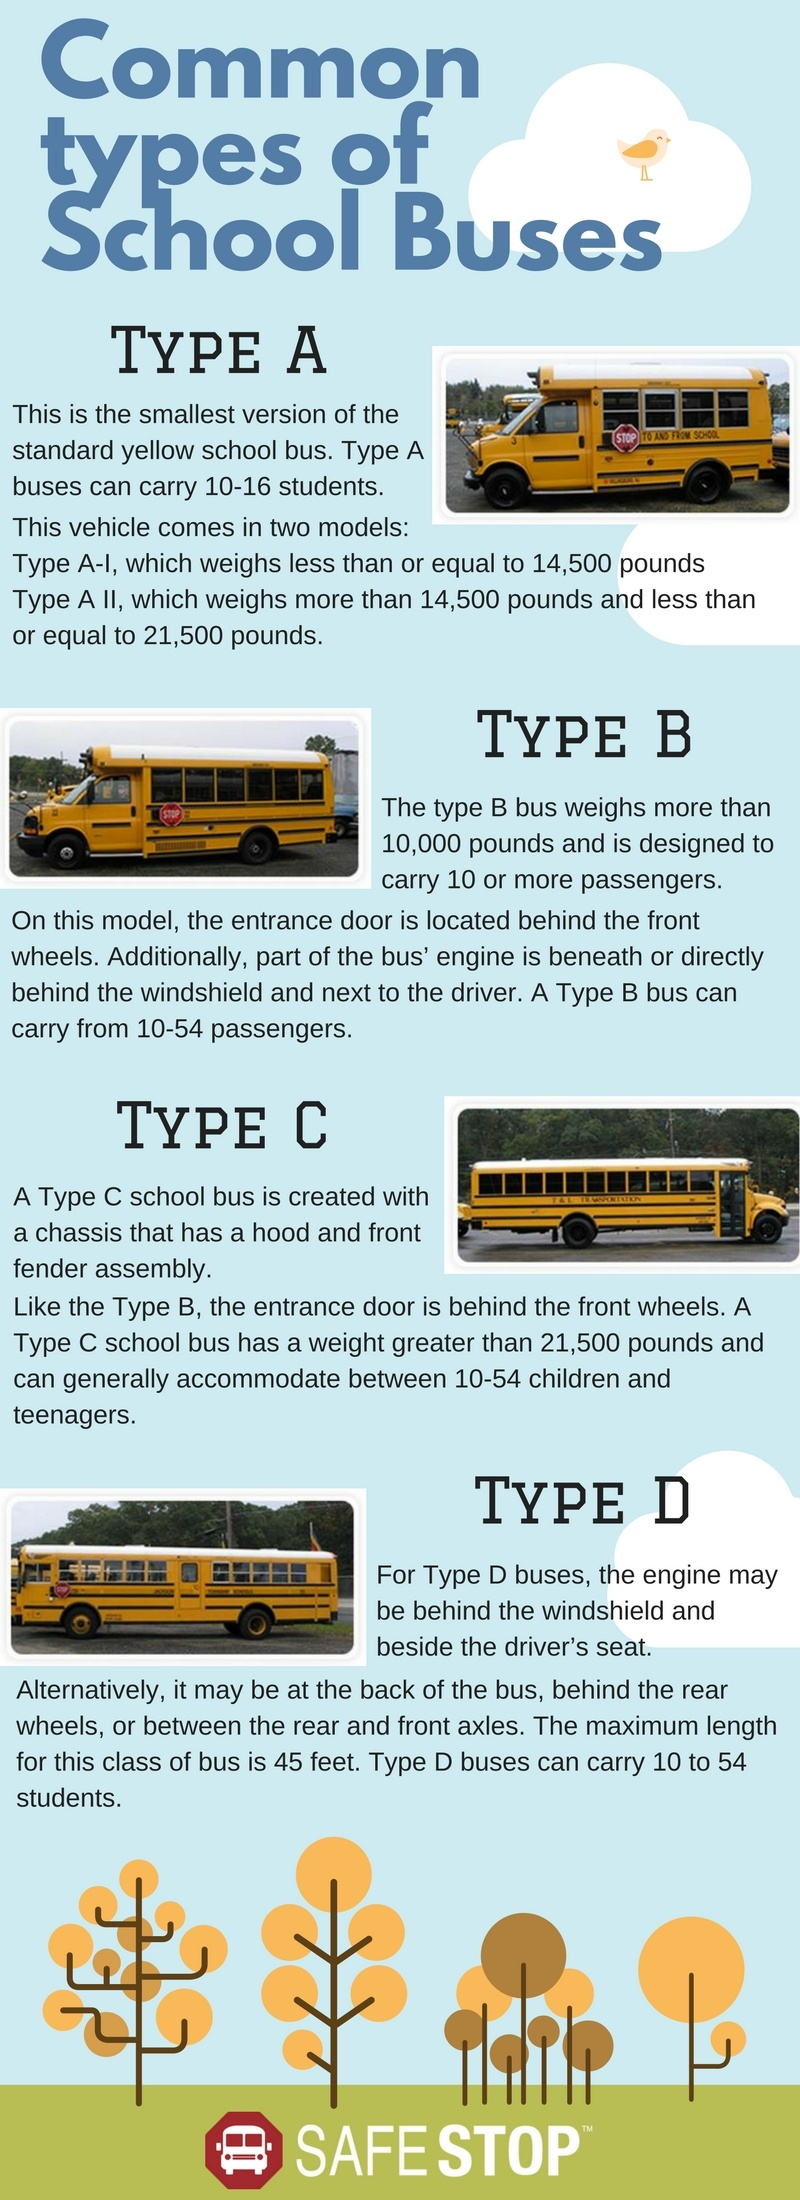 How Long is a School Bus Infographic SafeStop.jpg